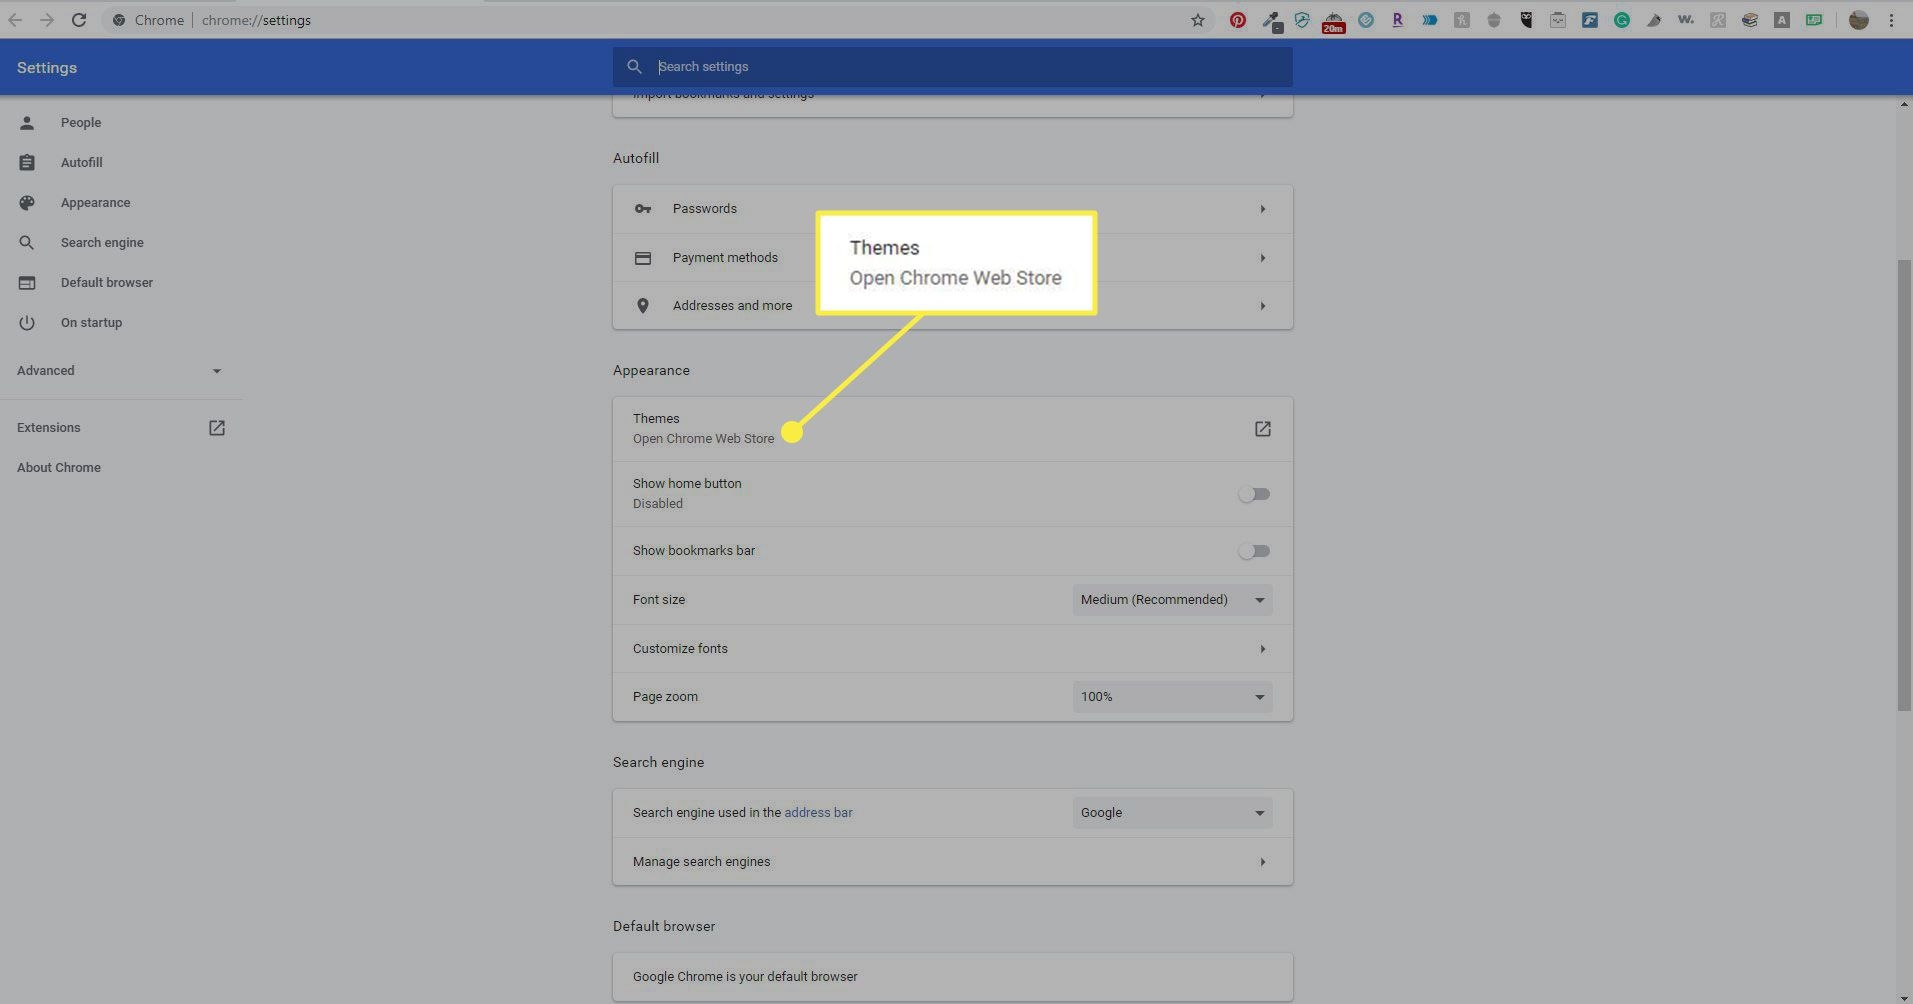 Themes in Chrome settings